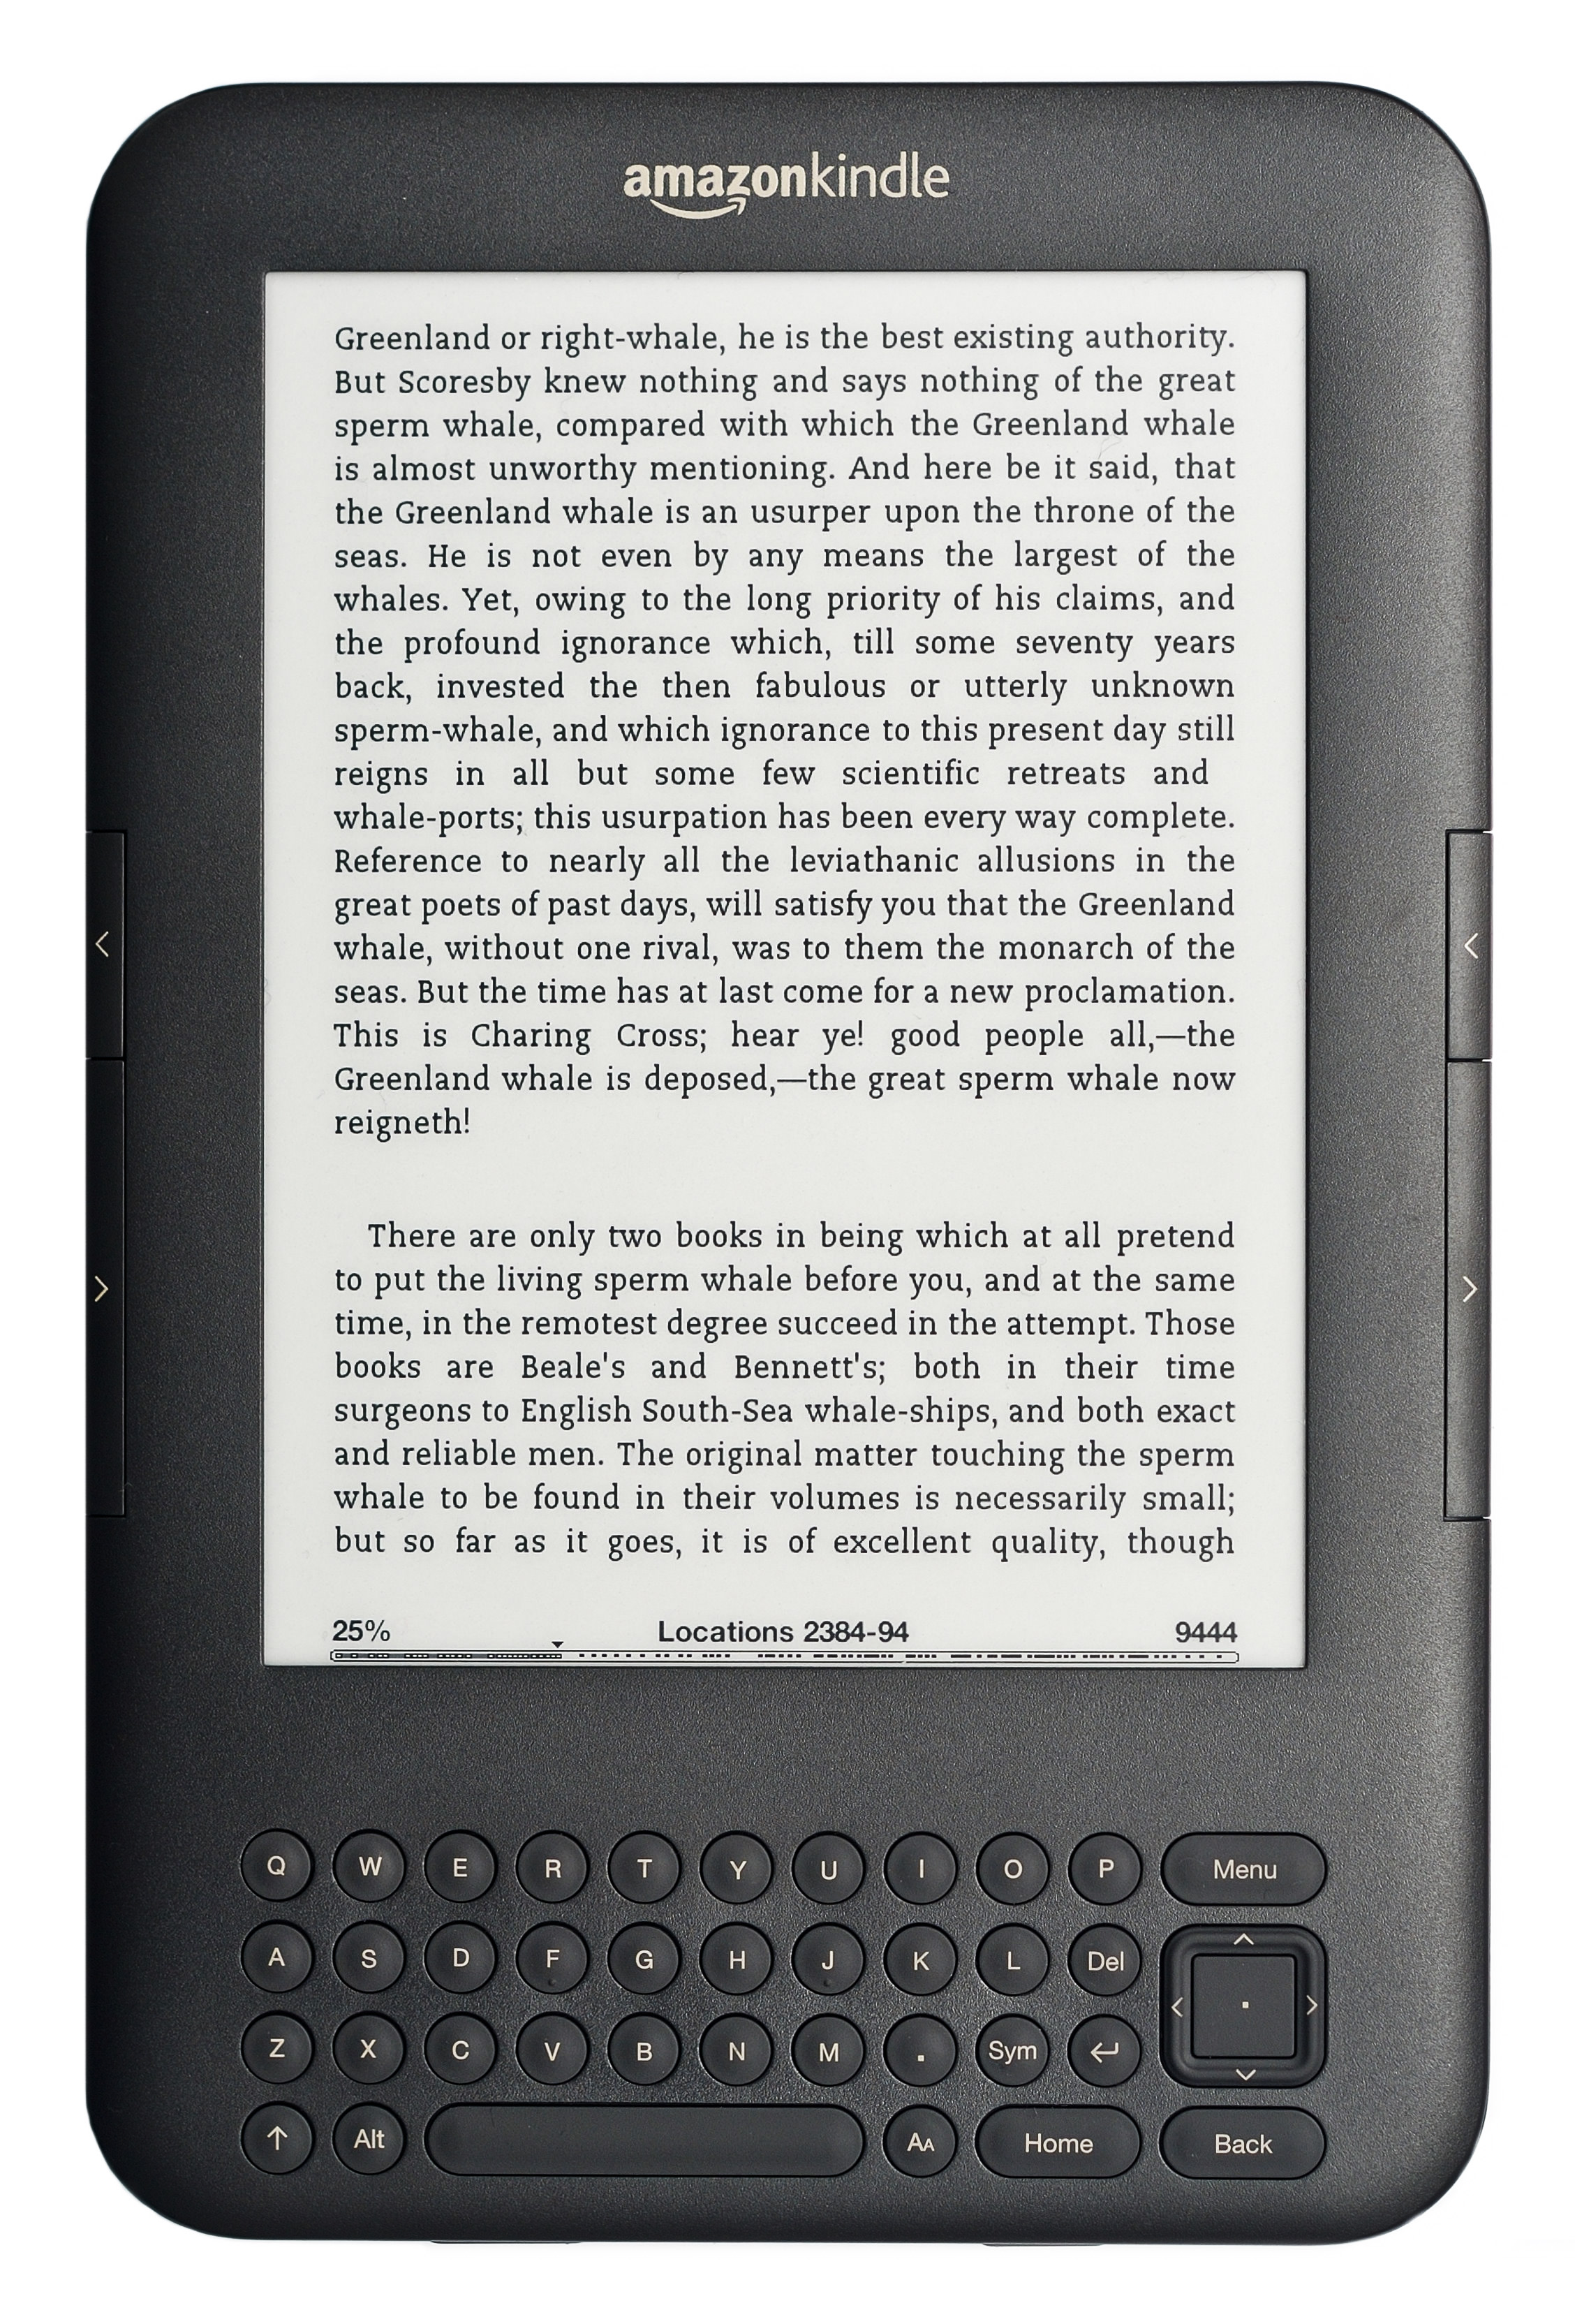 Descargar Libros Para Kindle Gratis Español Amazon Kindle Wikipedia La Enciclopedia Libre